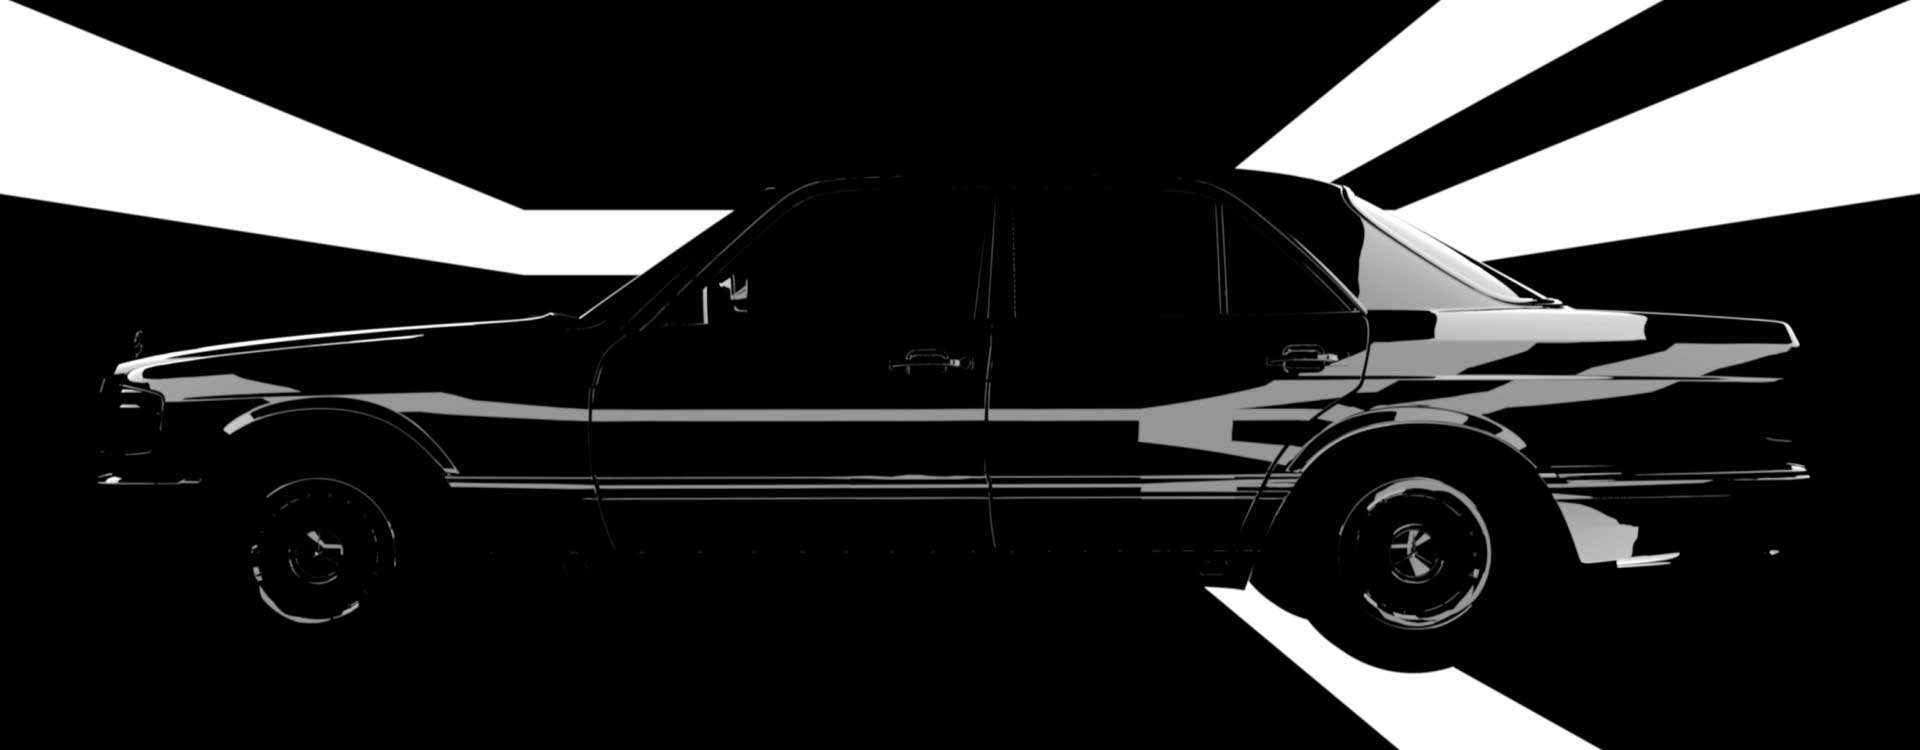 Car in black. Still from Mercedes-Benz Commercial.